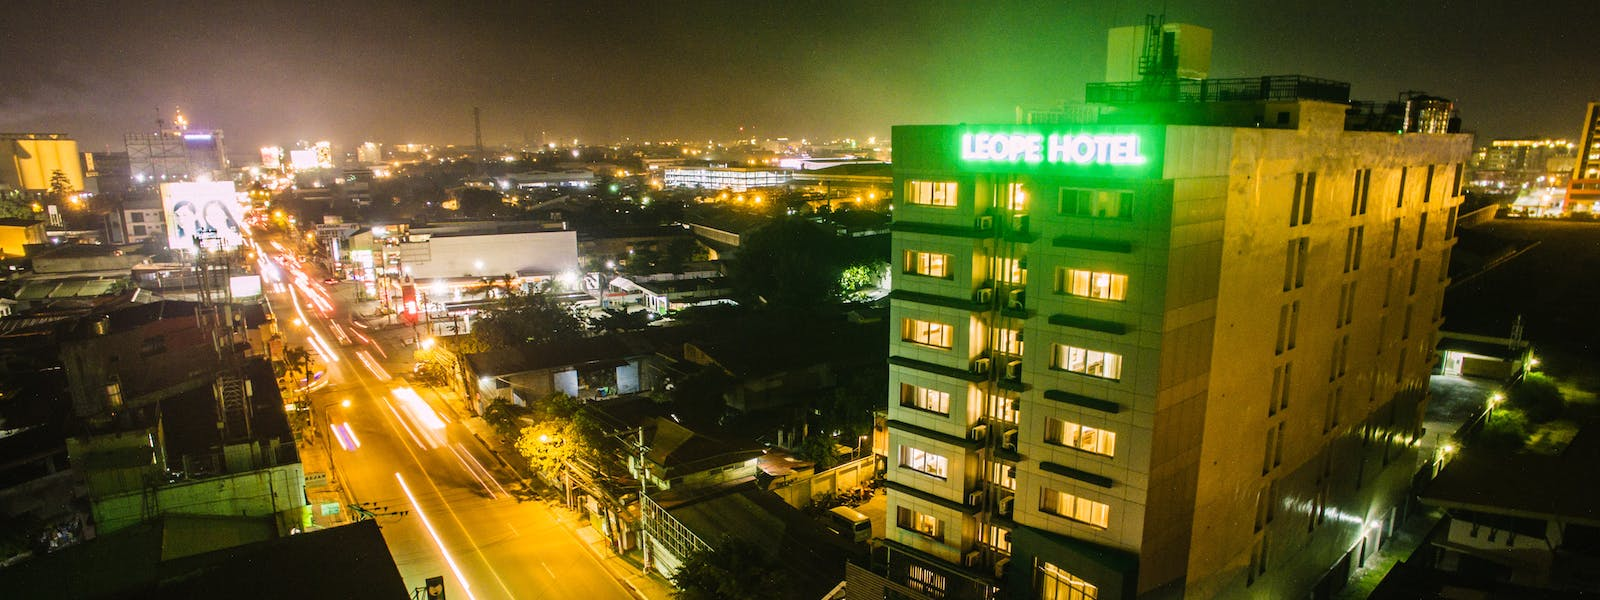 Leope Hotel, offering affordable prices.